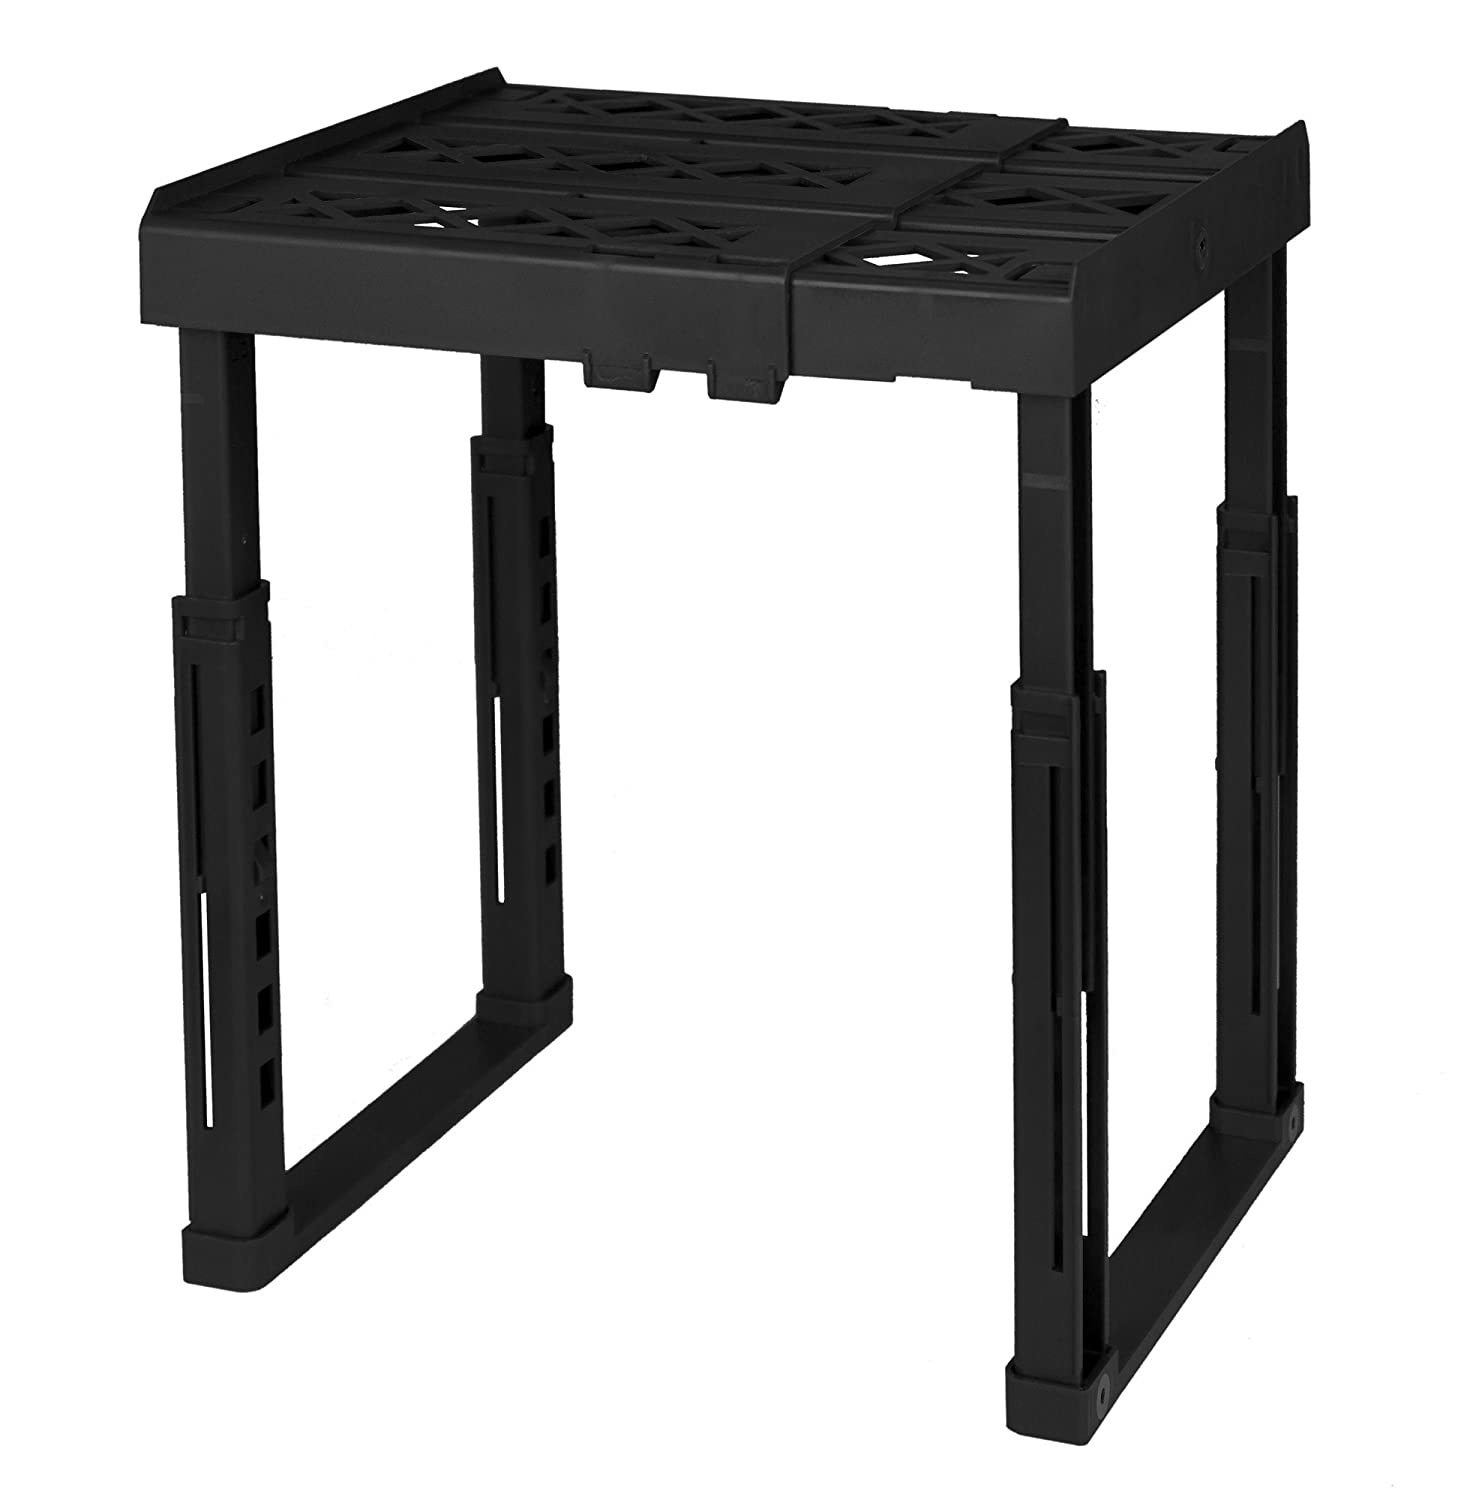 "Tools for School Locker Shelf. Adjustable Width 8"" - 12 1/2"" and Height 9 3/4"" - 14"". Stackable and Heavy Duty. Holds 40 lbs. per Shelf. (Single, Black)"